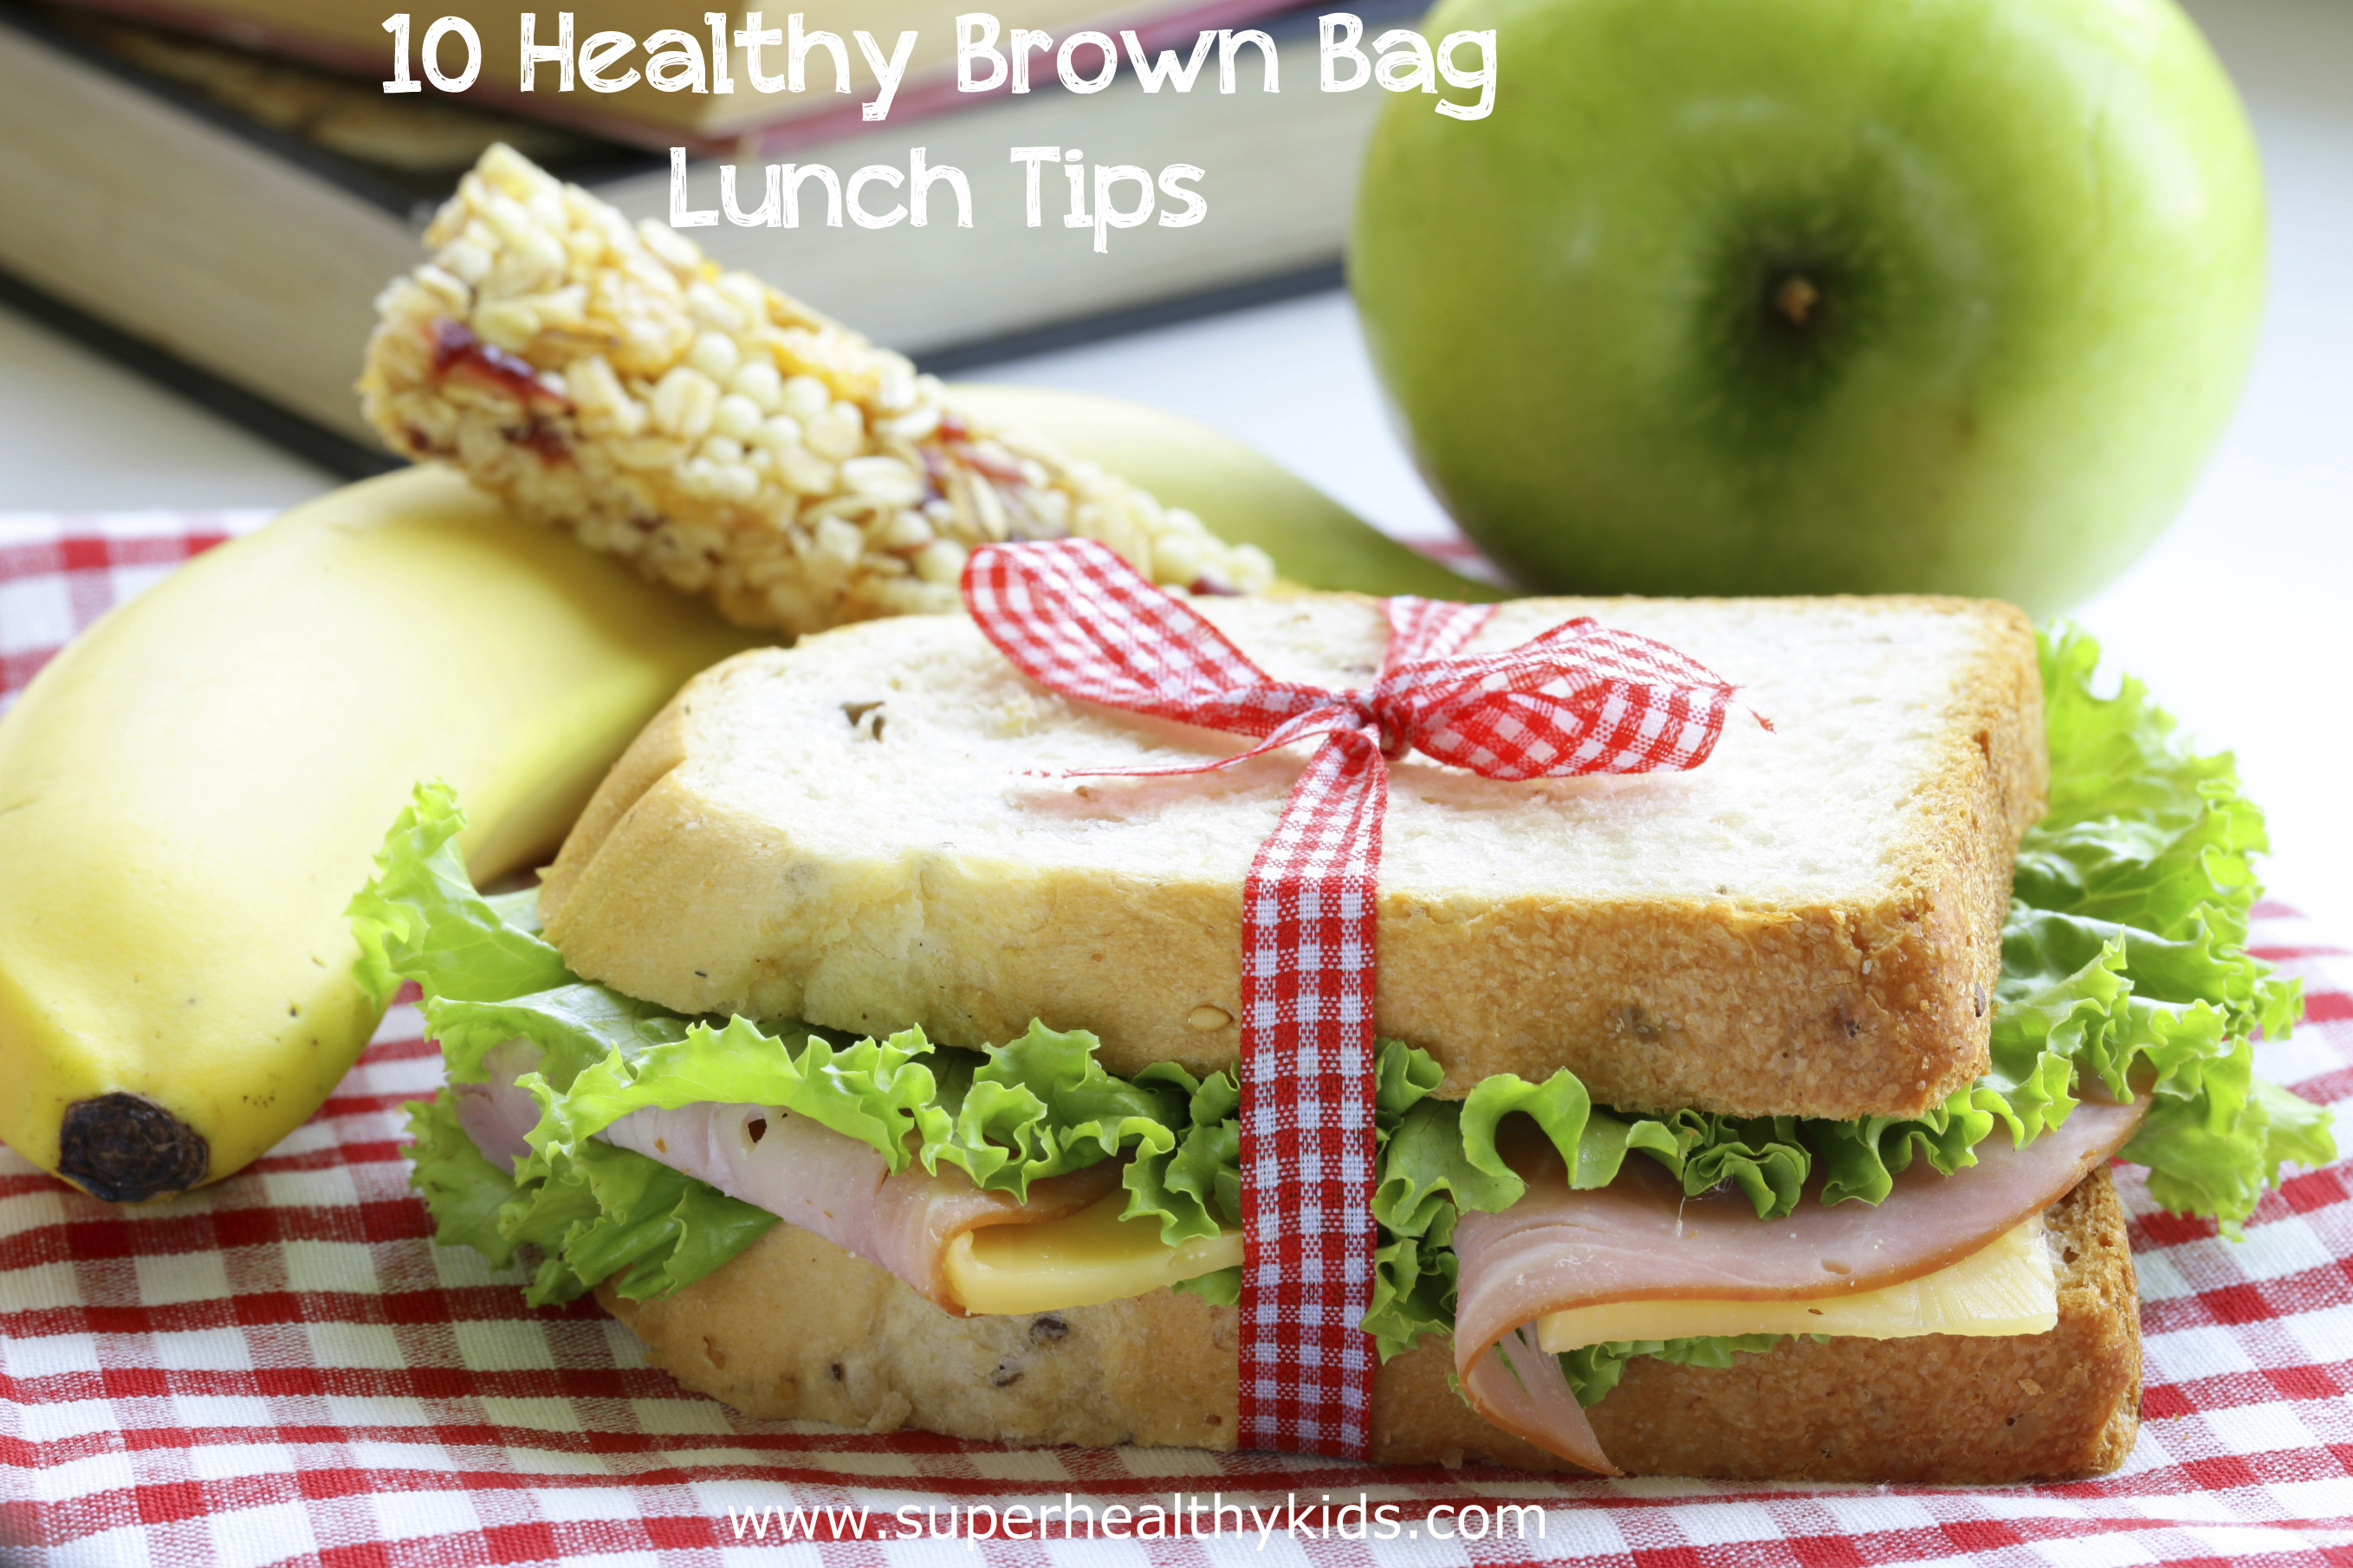 Healthy Brown Bag Lunches  10 Healthy Brown Bag Lunch Tips